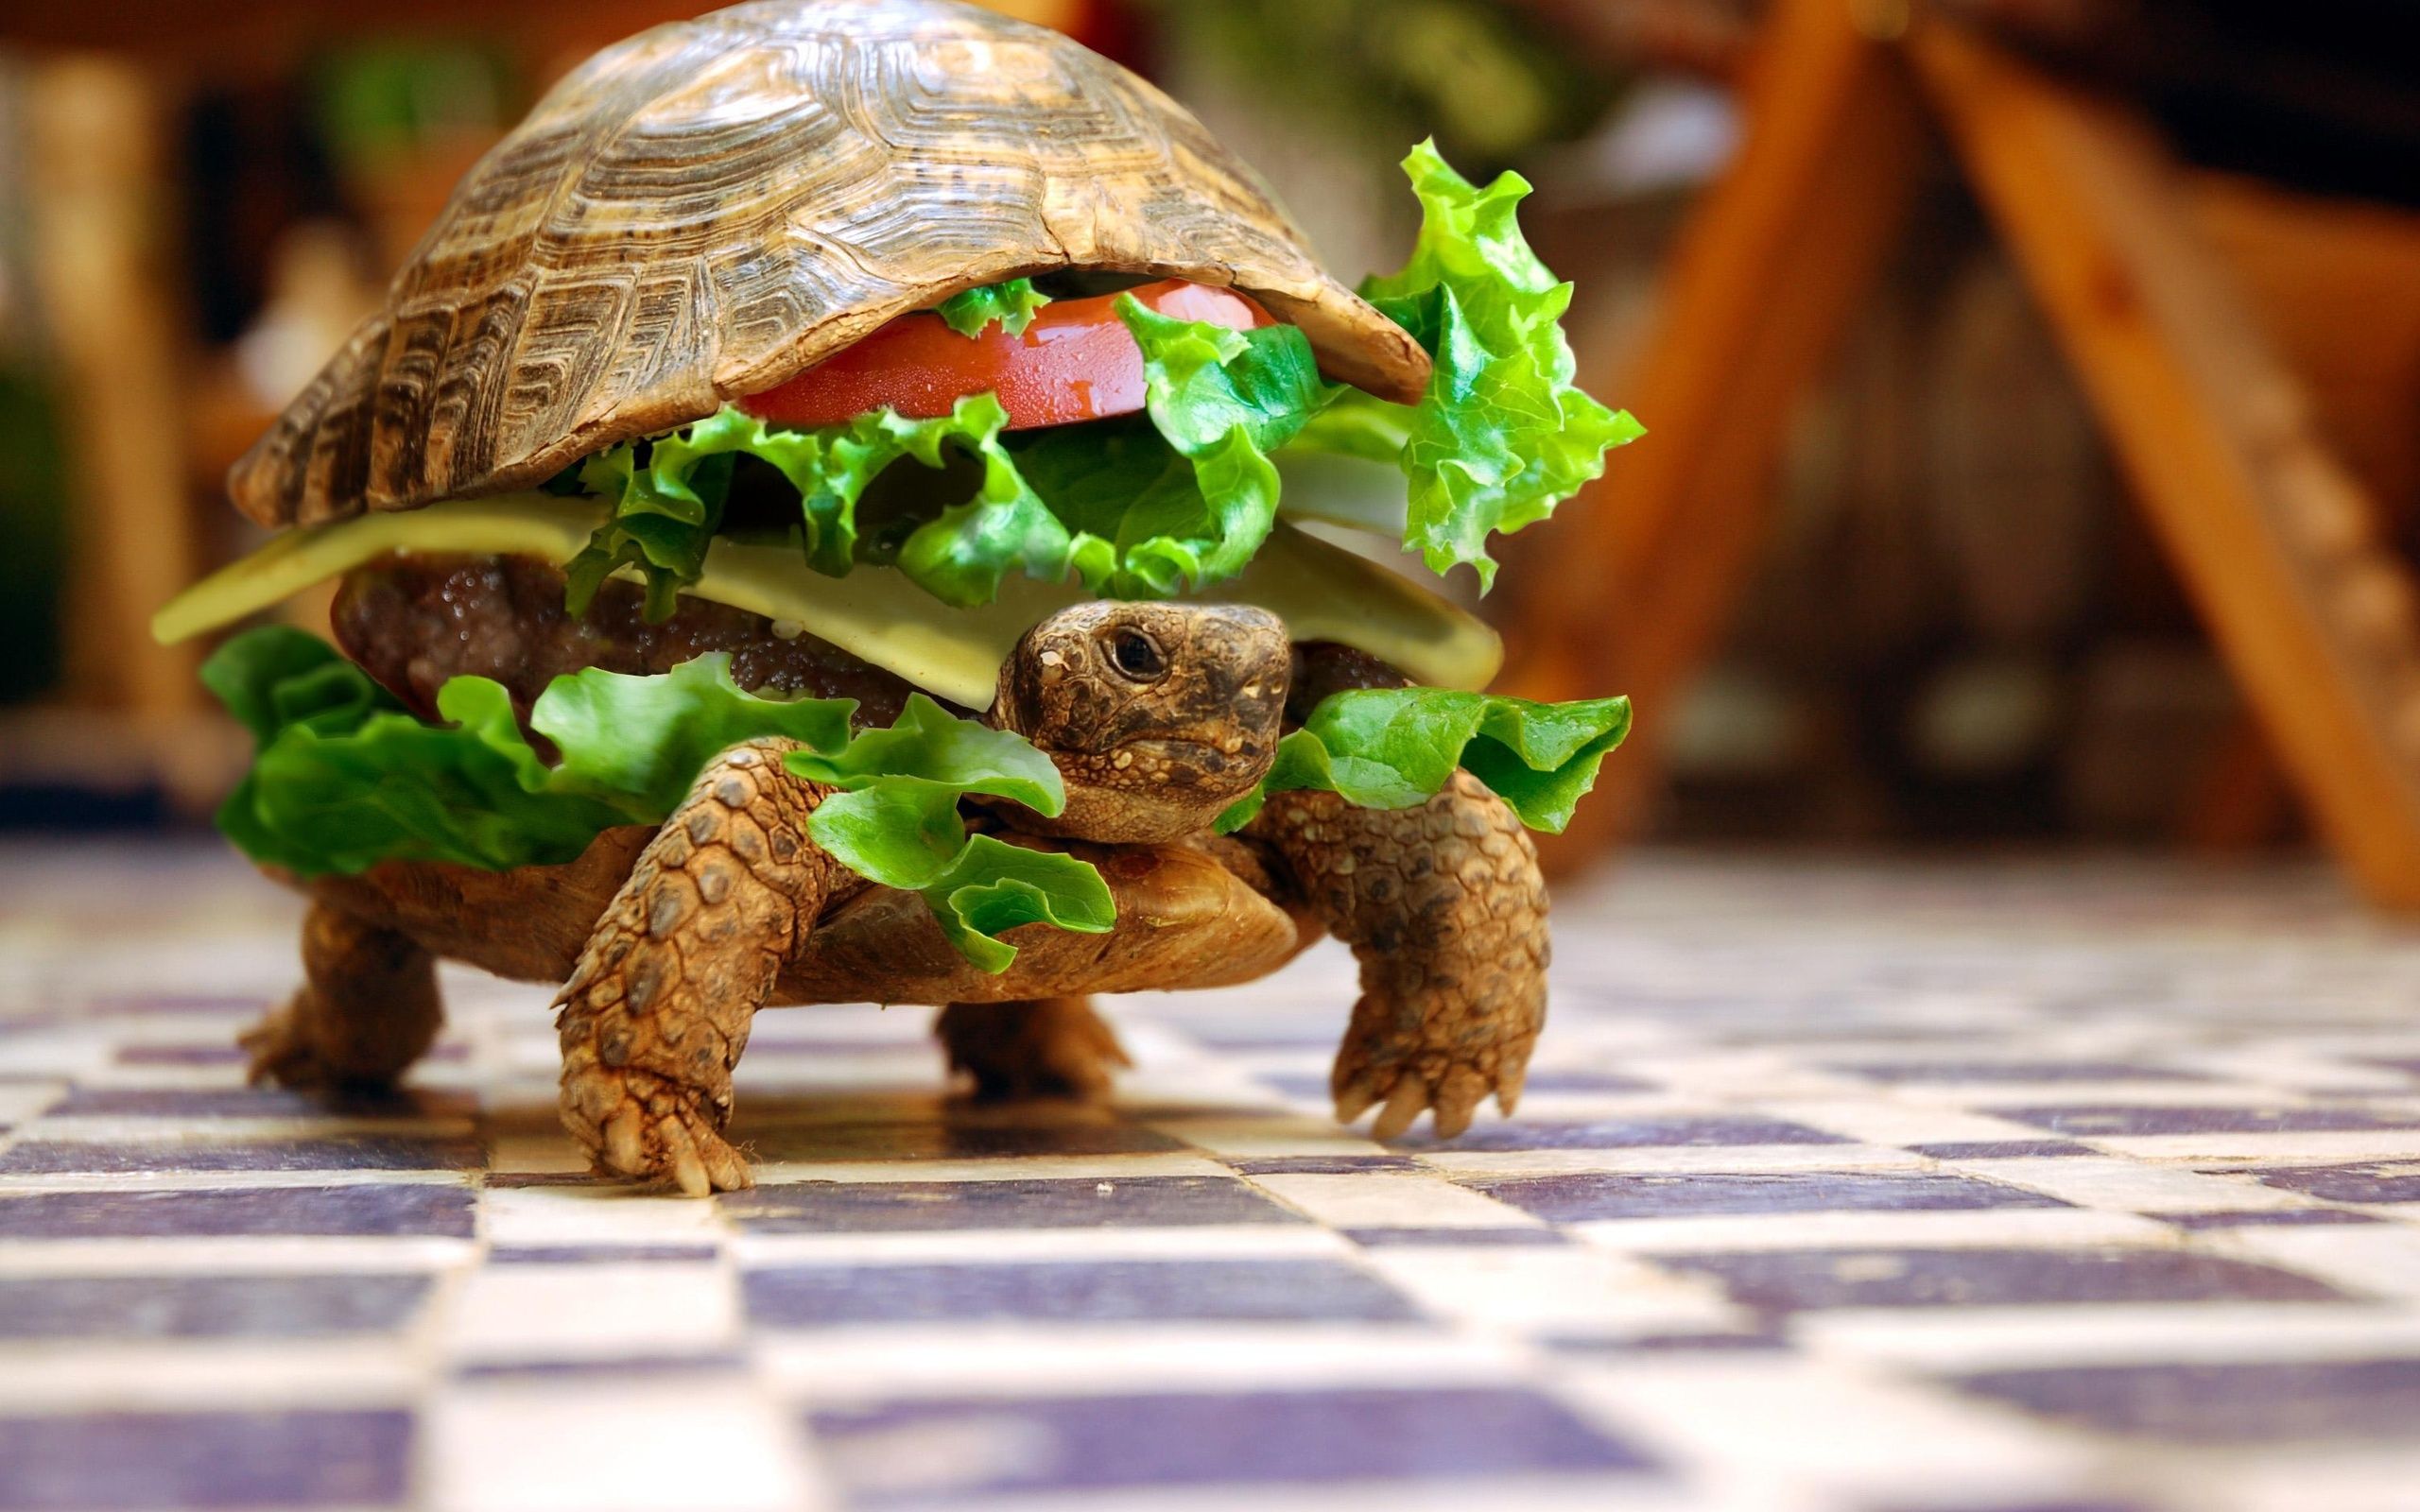 Funny Tortoise Wallpaper